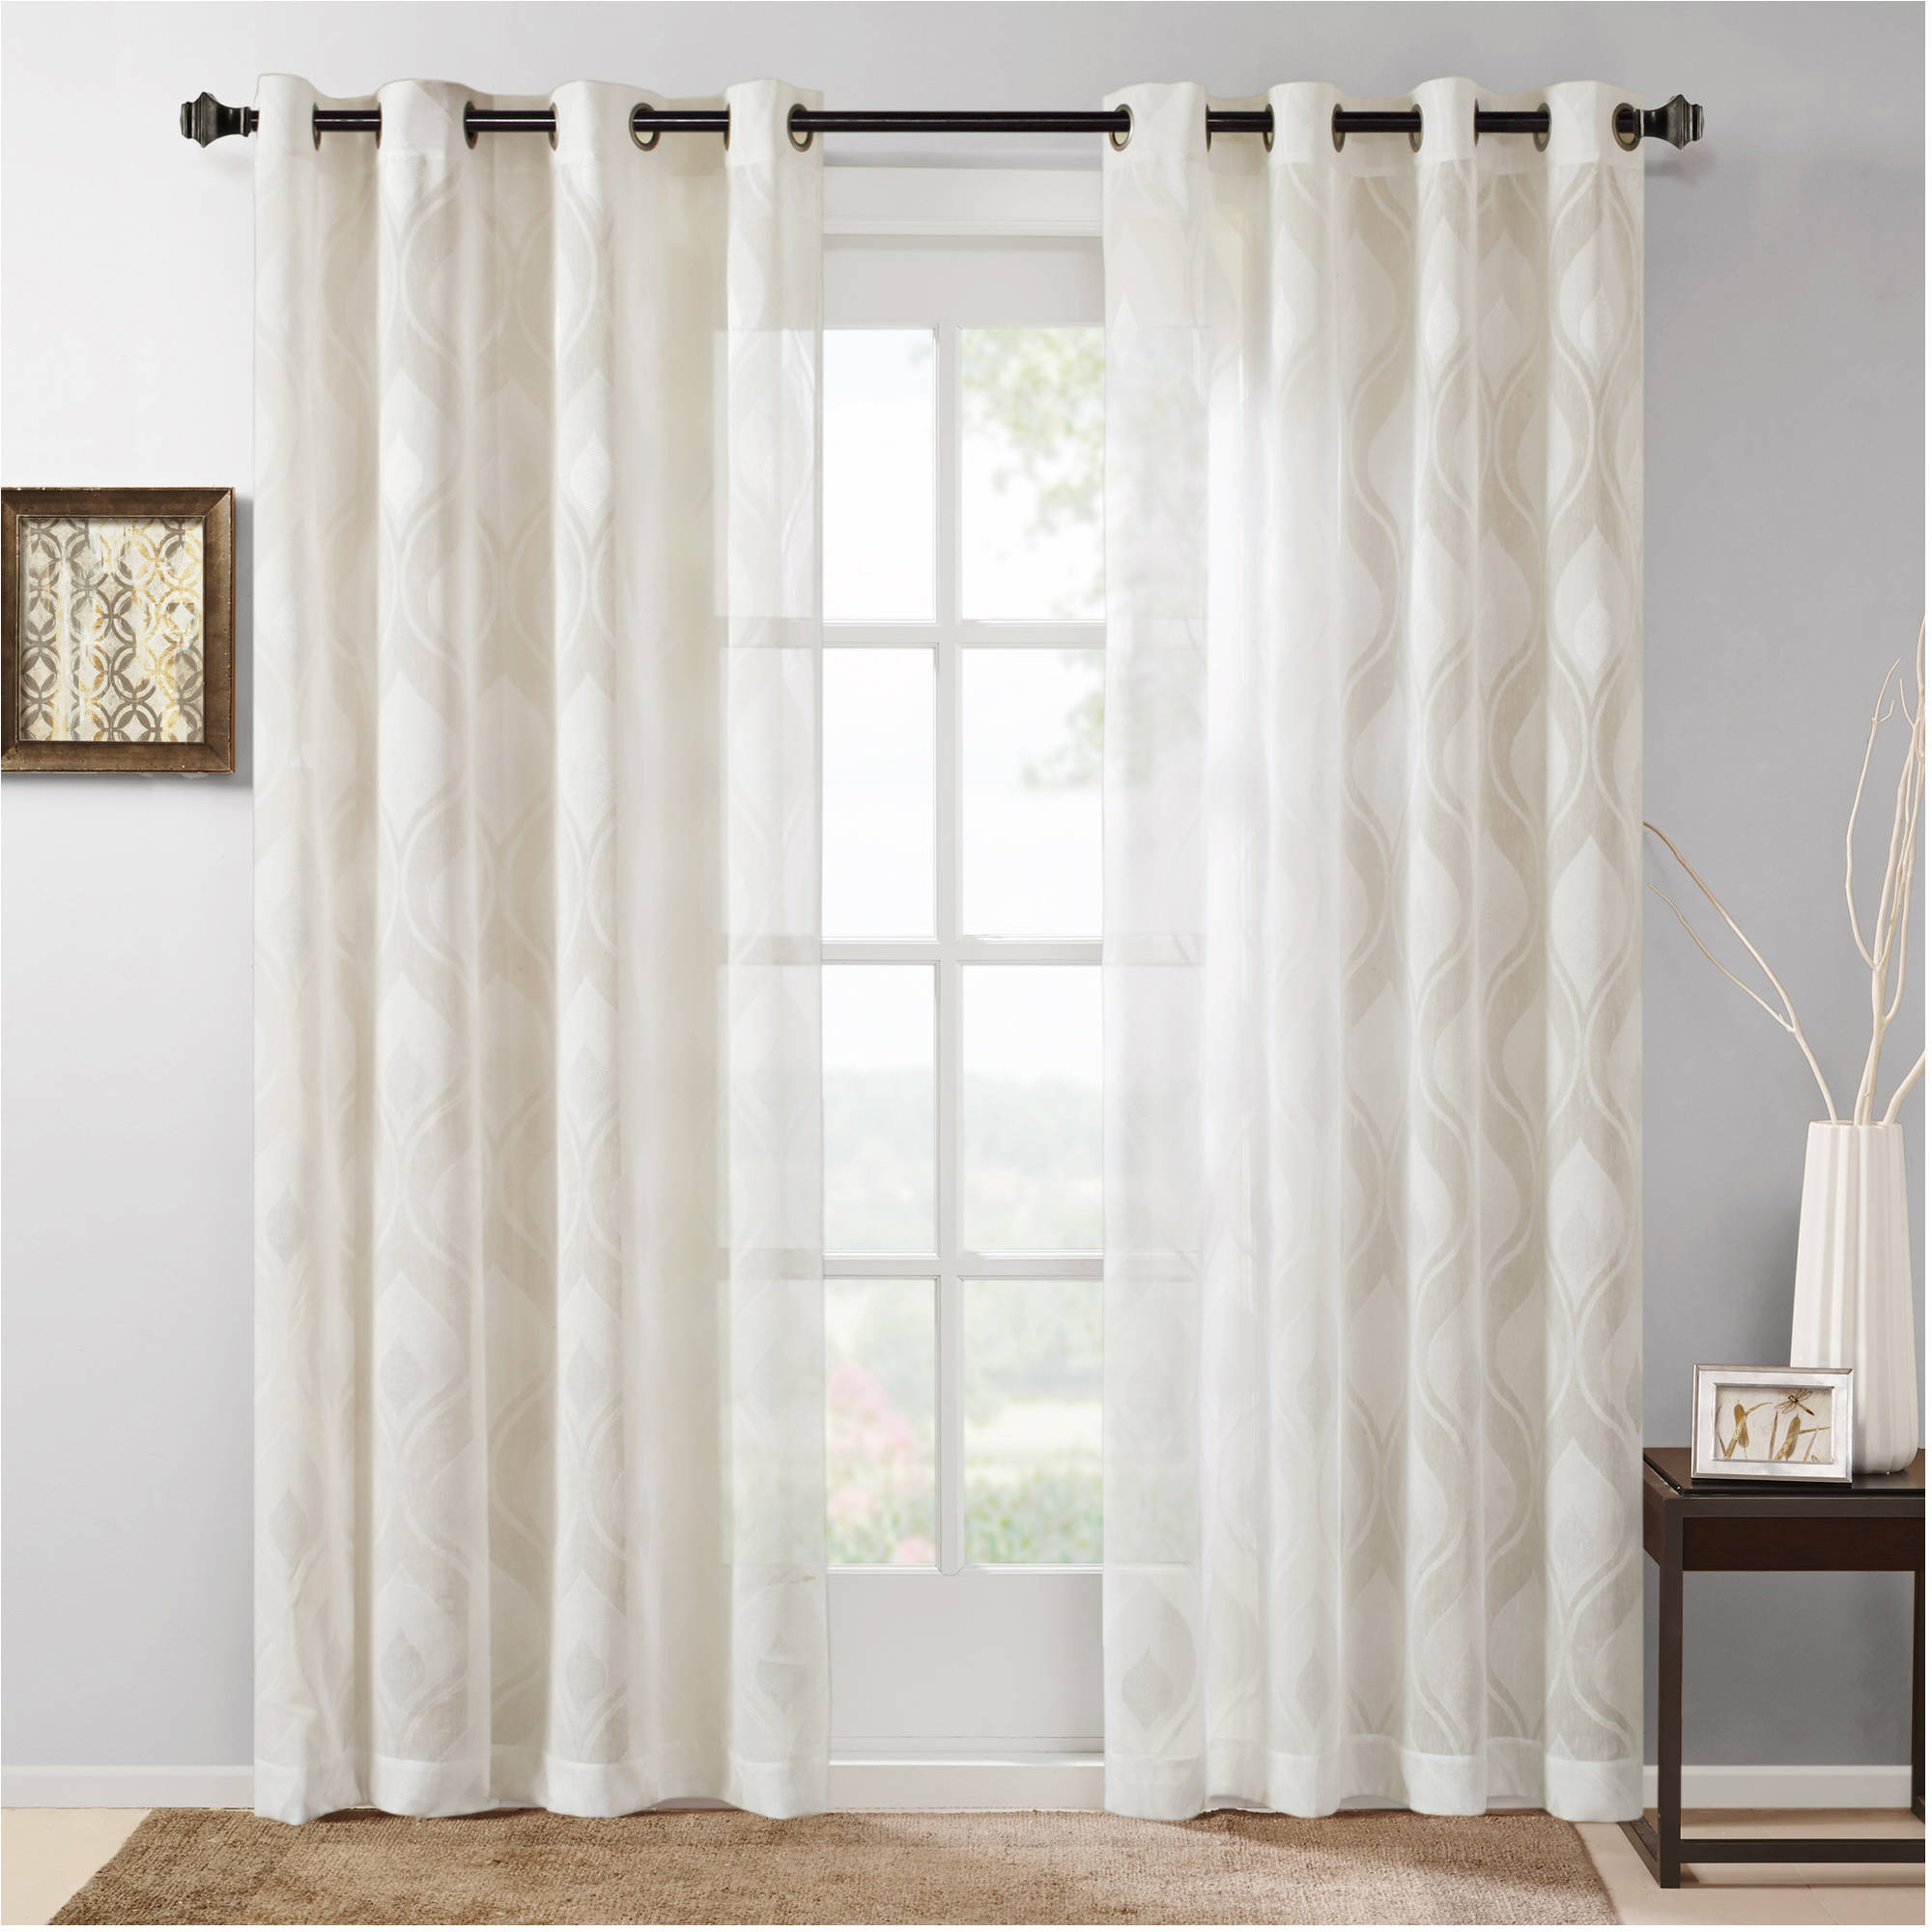 Home Essence Caris Sheer Ogee Jacquard Window Panel